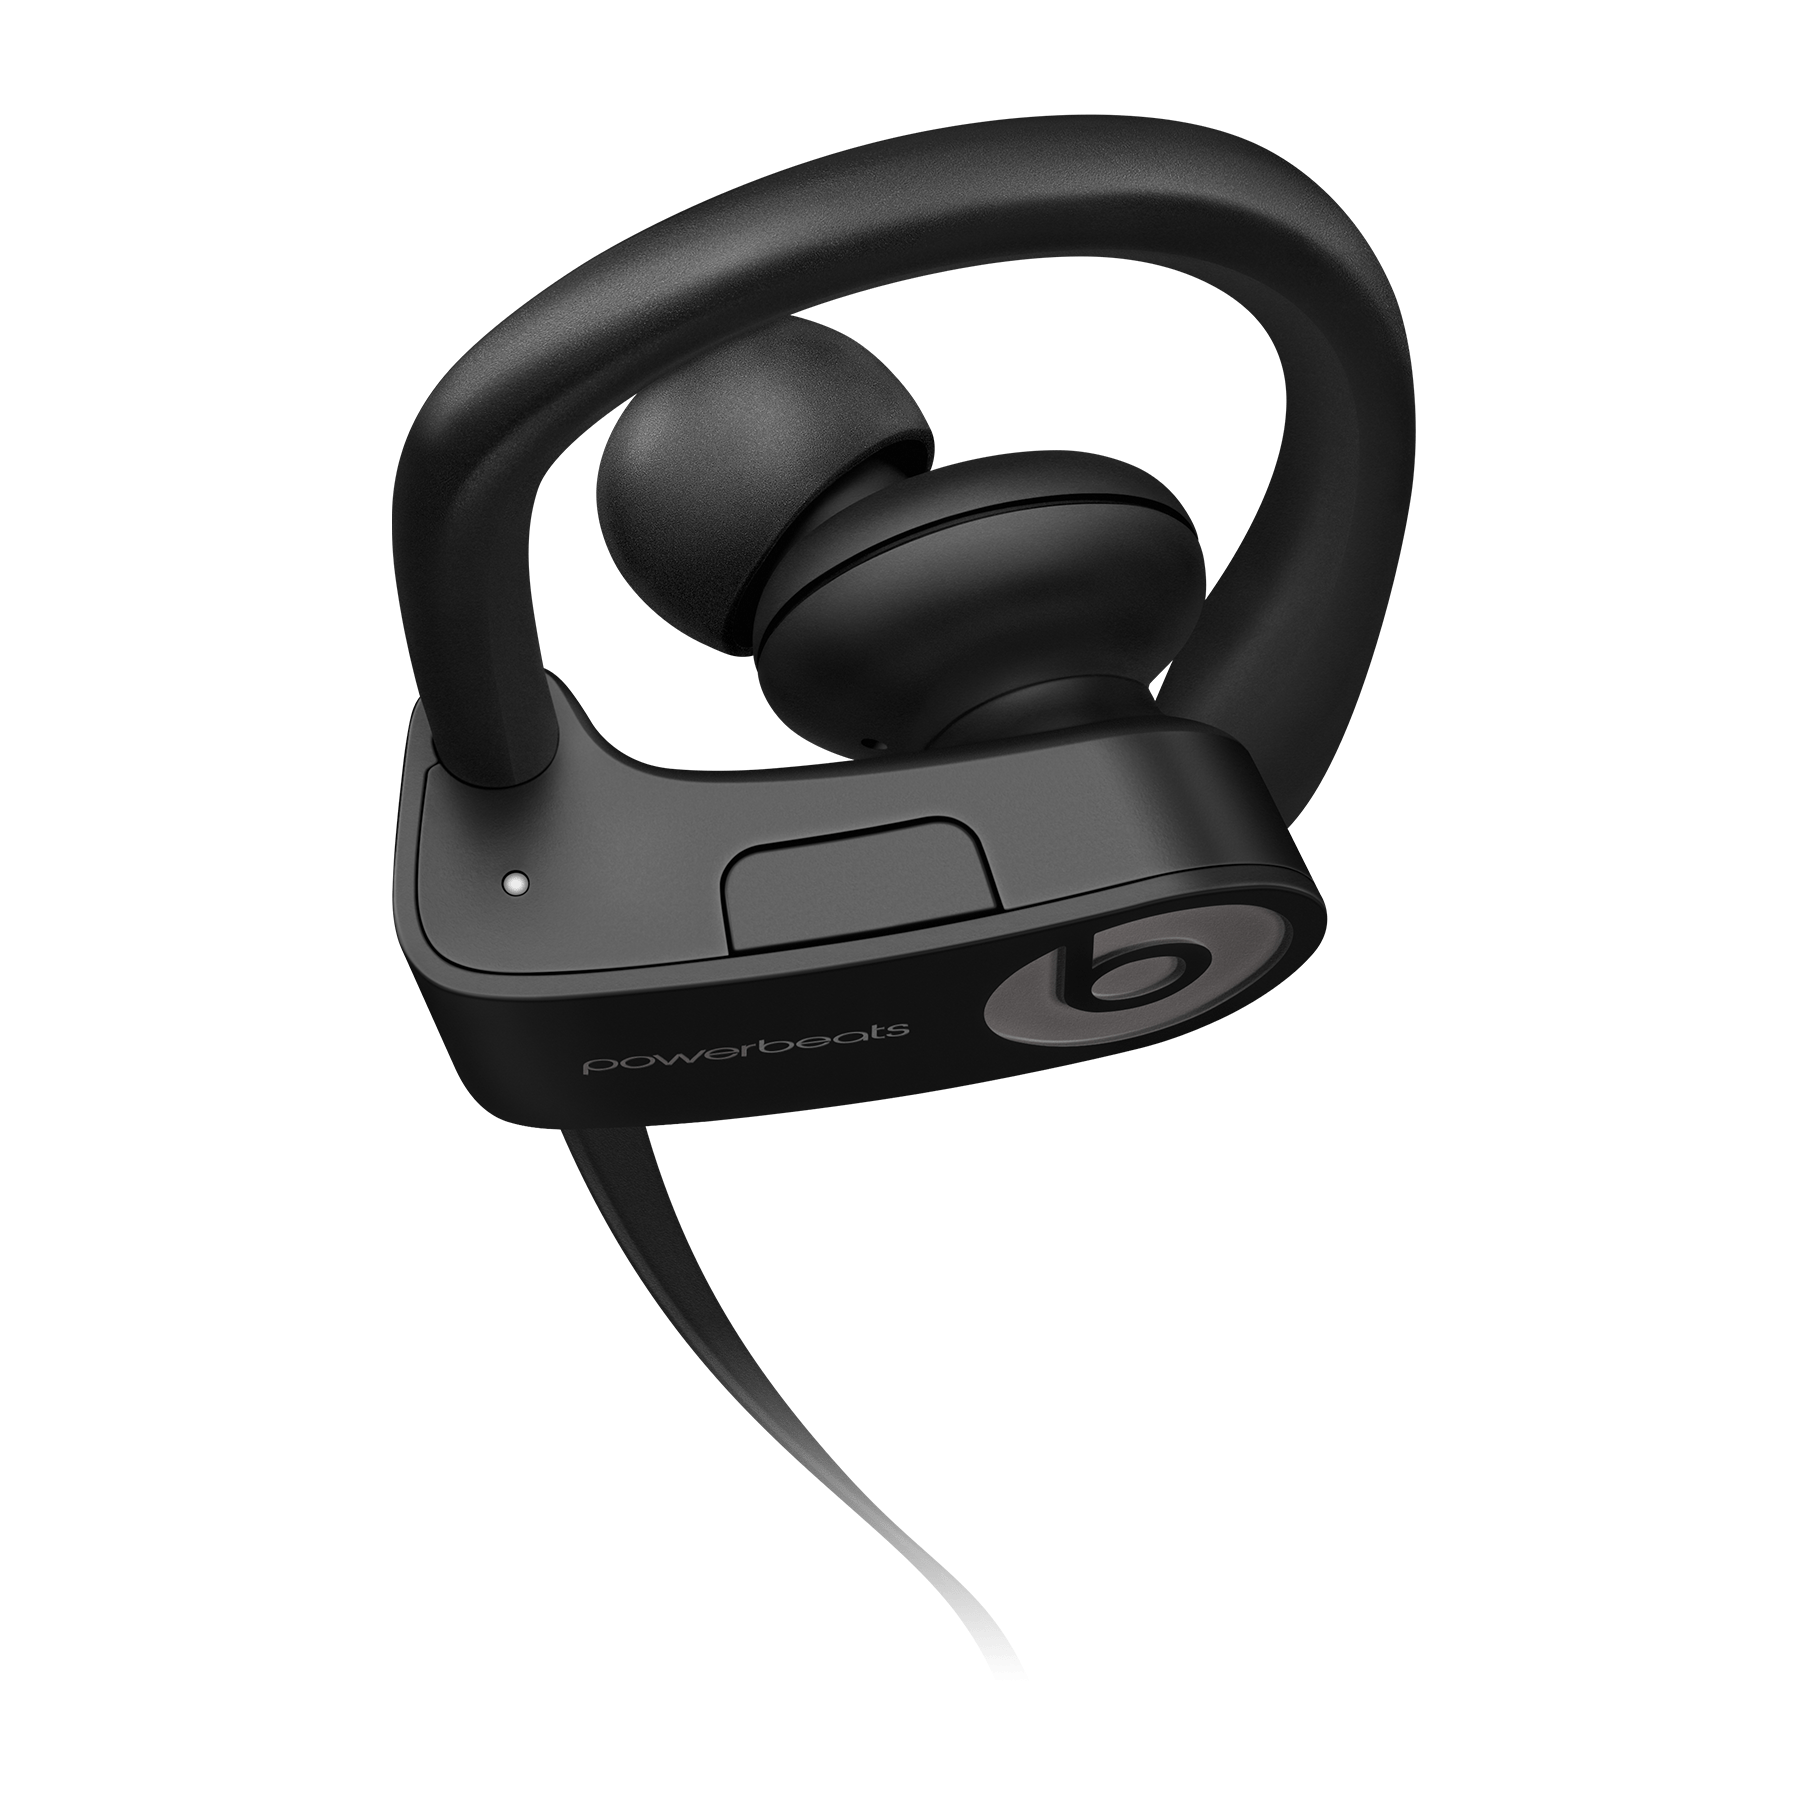 Powerbeats3 Wireless - Beats by Dre c4cfb5a3f6fb